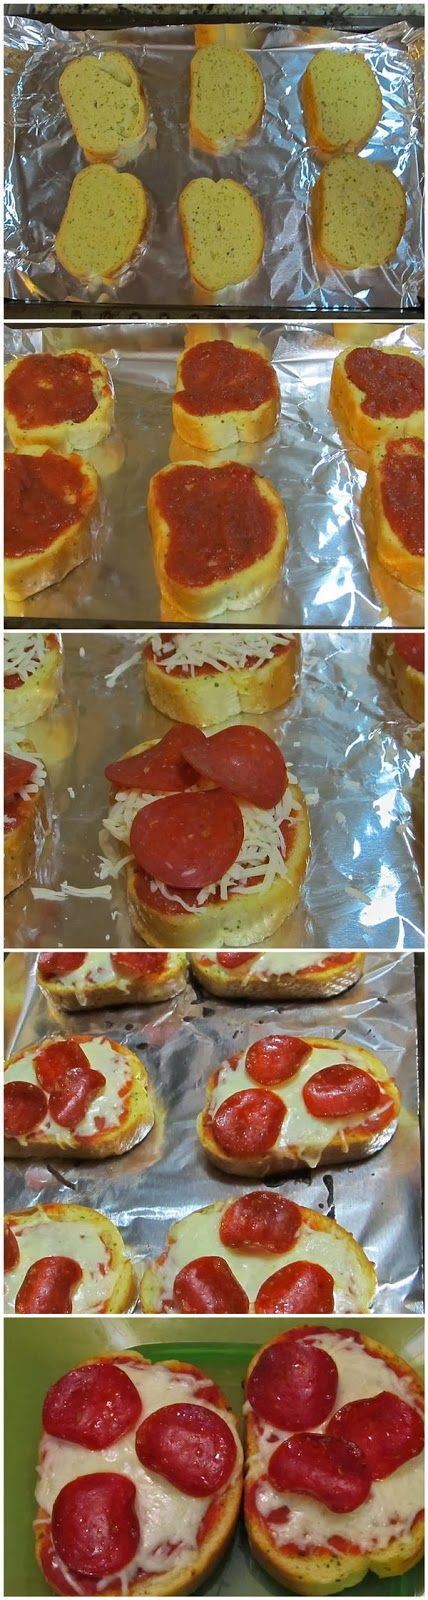 Texas Toast Garlic Bread Pizza- why didn't I think of this before??